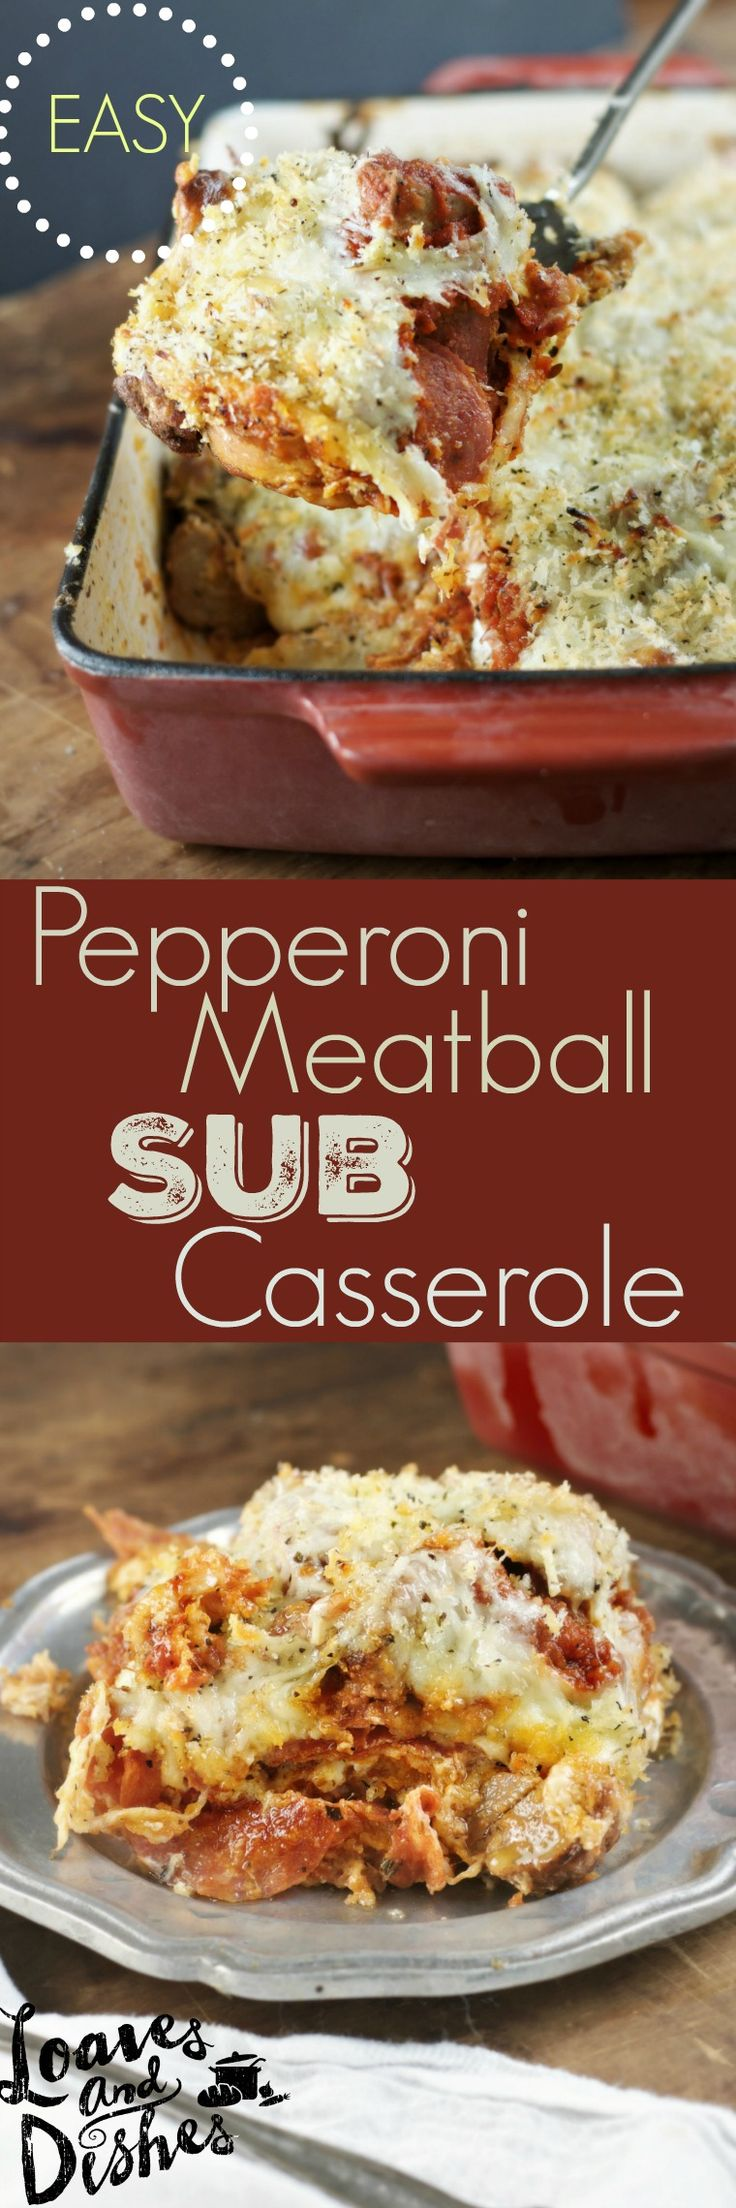 This simple and easy Pepperoni Meatball Sub Casserole tastes like your favorite Italian Sandwich that can be shared with company, guests, children. Everyone LOVES it!